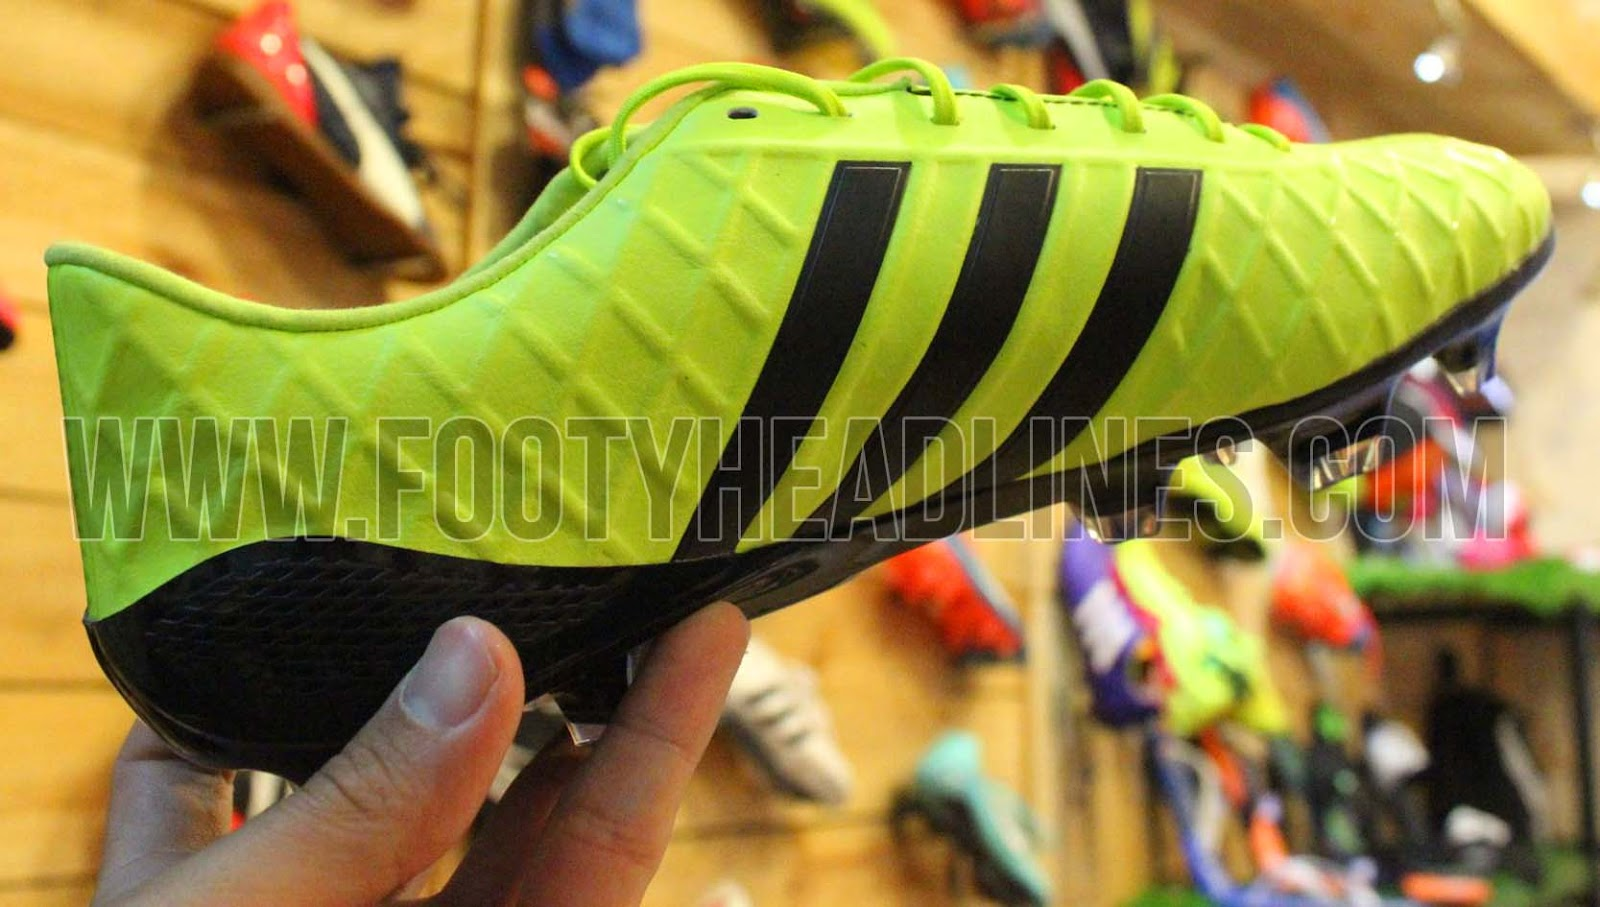 7421a663d NEXT-GEN ADIDAS ADIPURE 11PRO SL 2015 BOOTS LEAKED